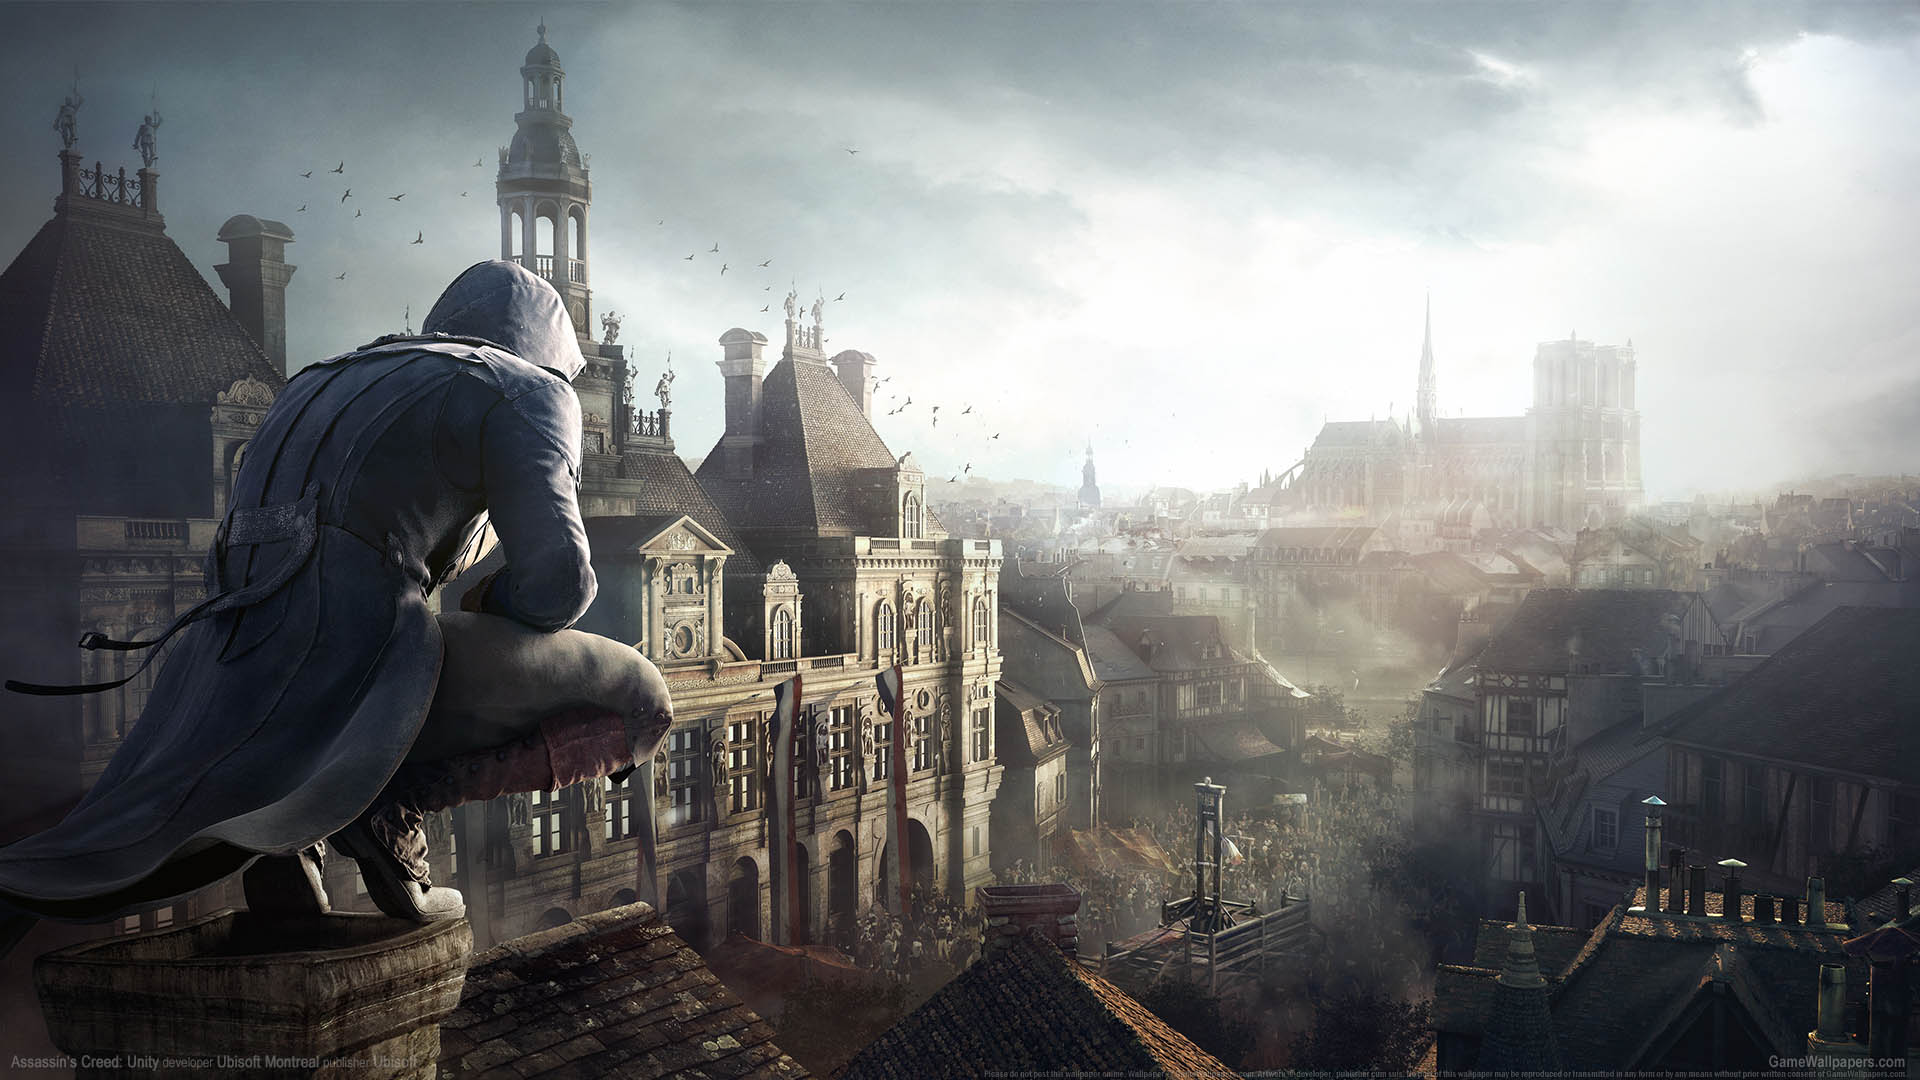 Assassin's Creed: Unity wallpaper 13 1920x1080